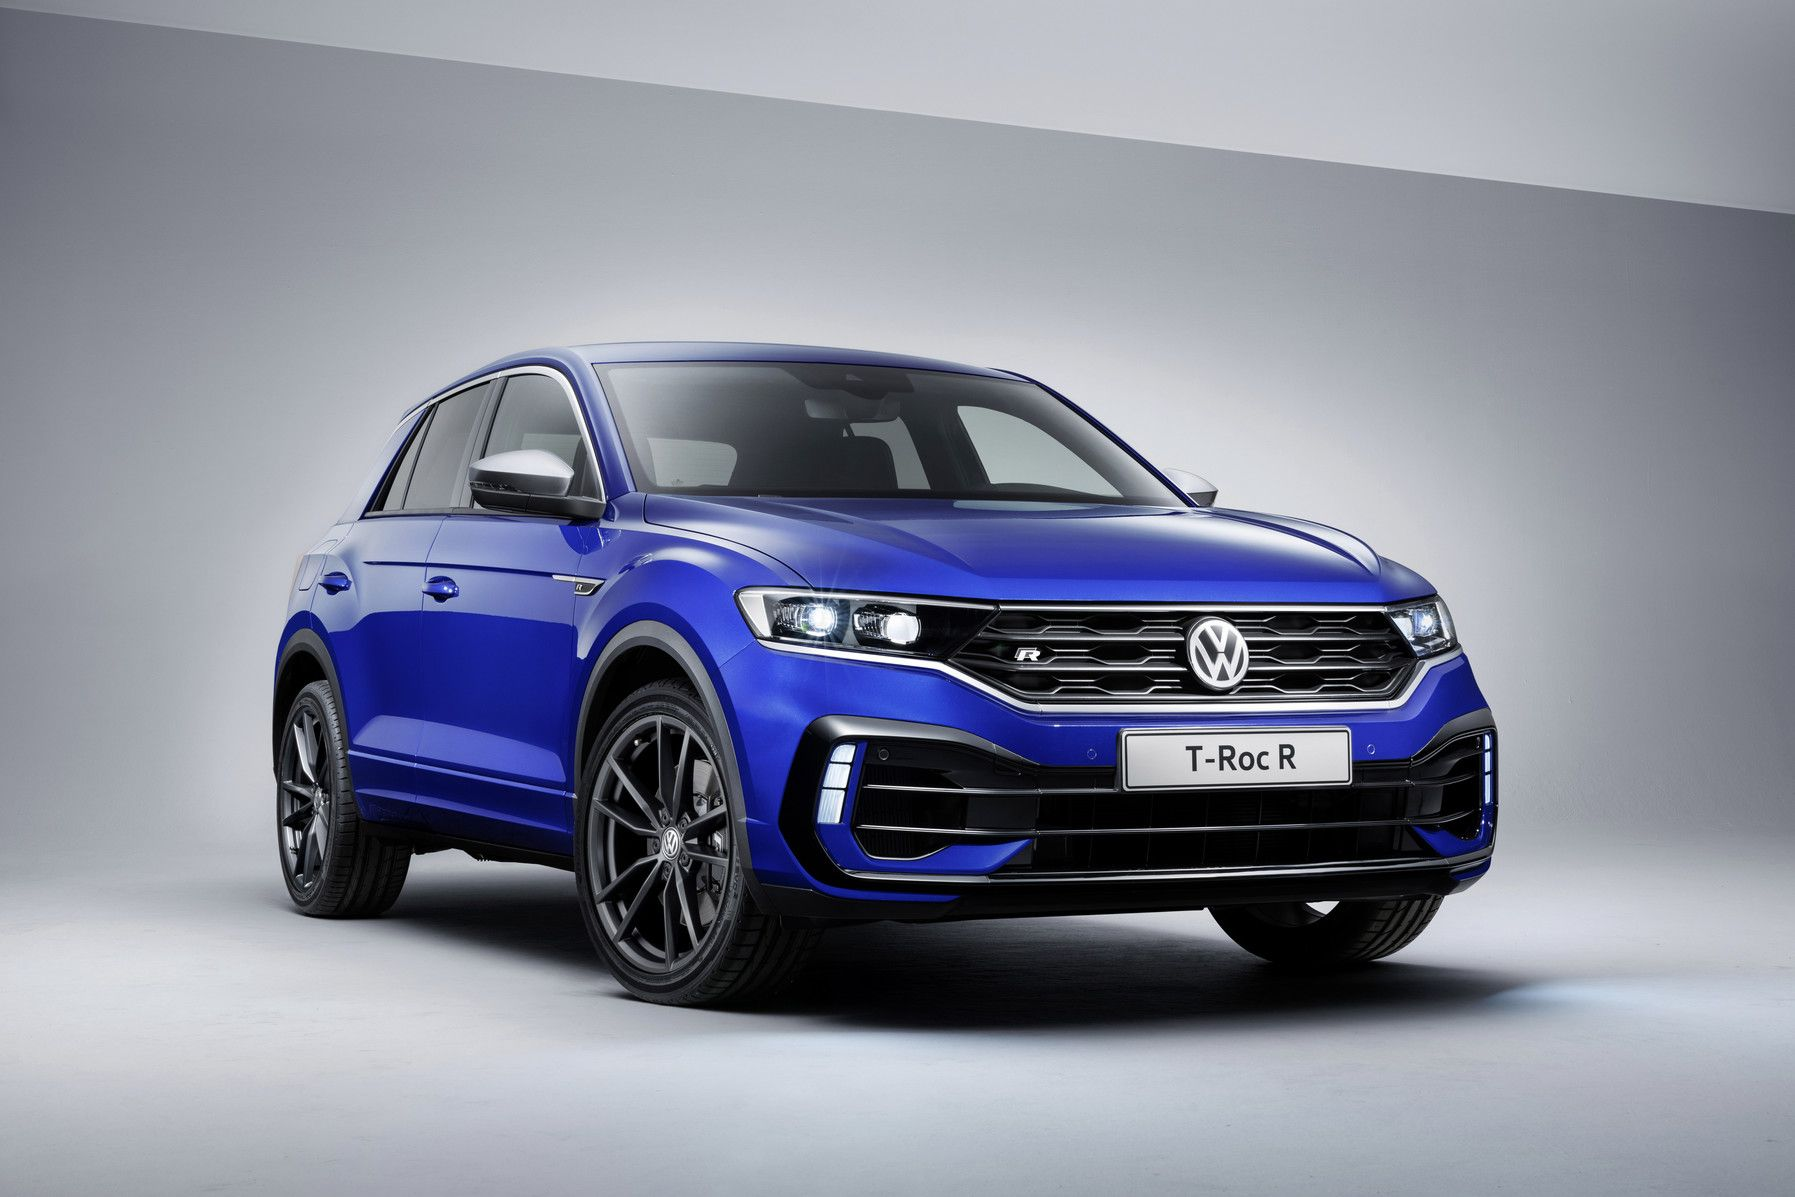 Volkswagen T Roc R Revealed With 296 Hp 221 Kw Tiguan R Line Volkswagen Car Tiguan R